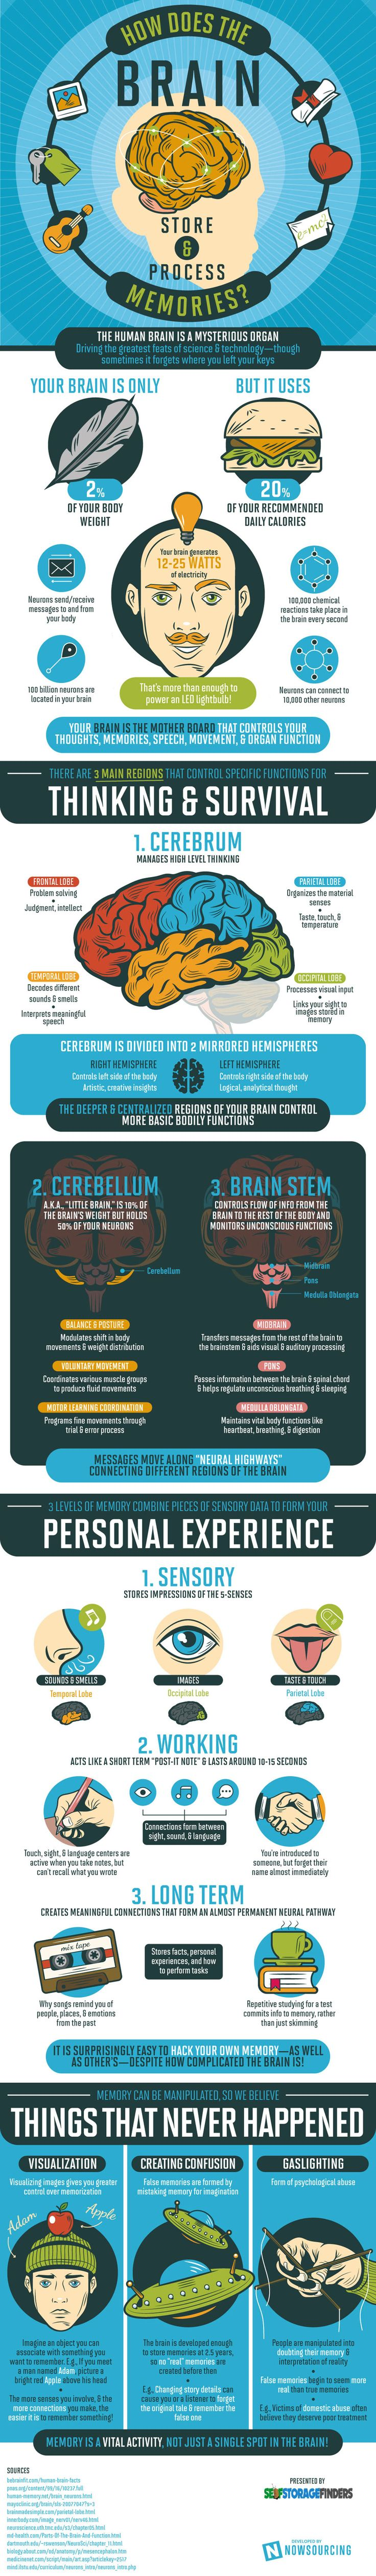 How the Human Brain Store Memories Infographic. Topic: mind, neuroscience, amnesia, dementia, cognitive psychology, memory, Alzheimer's disease, epilepsy, mental health.